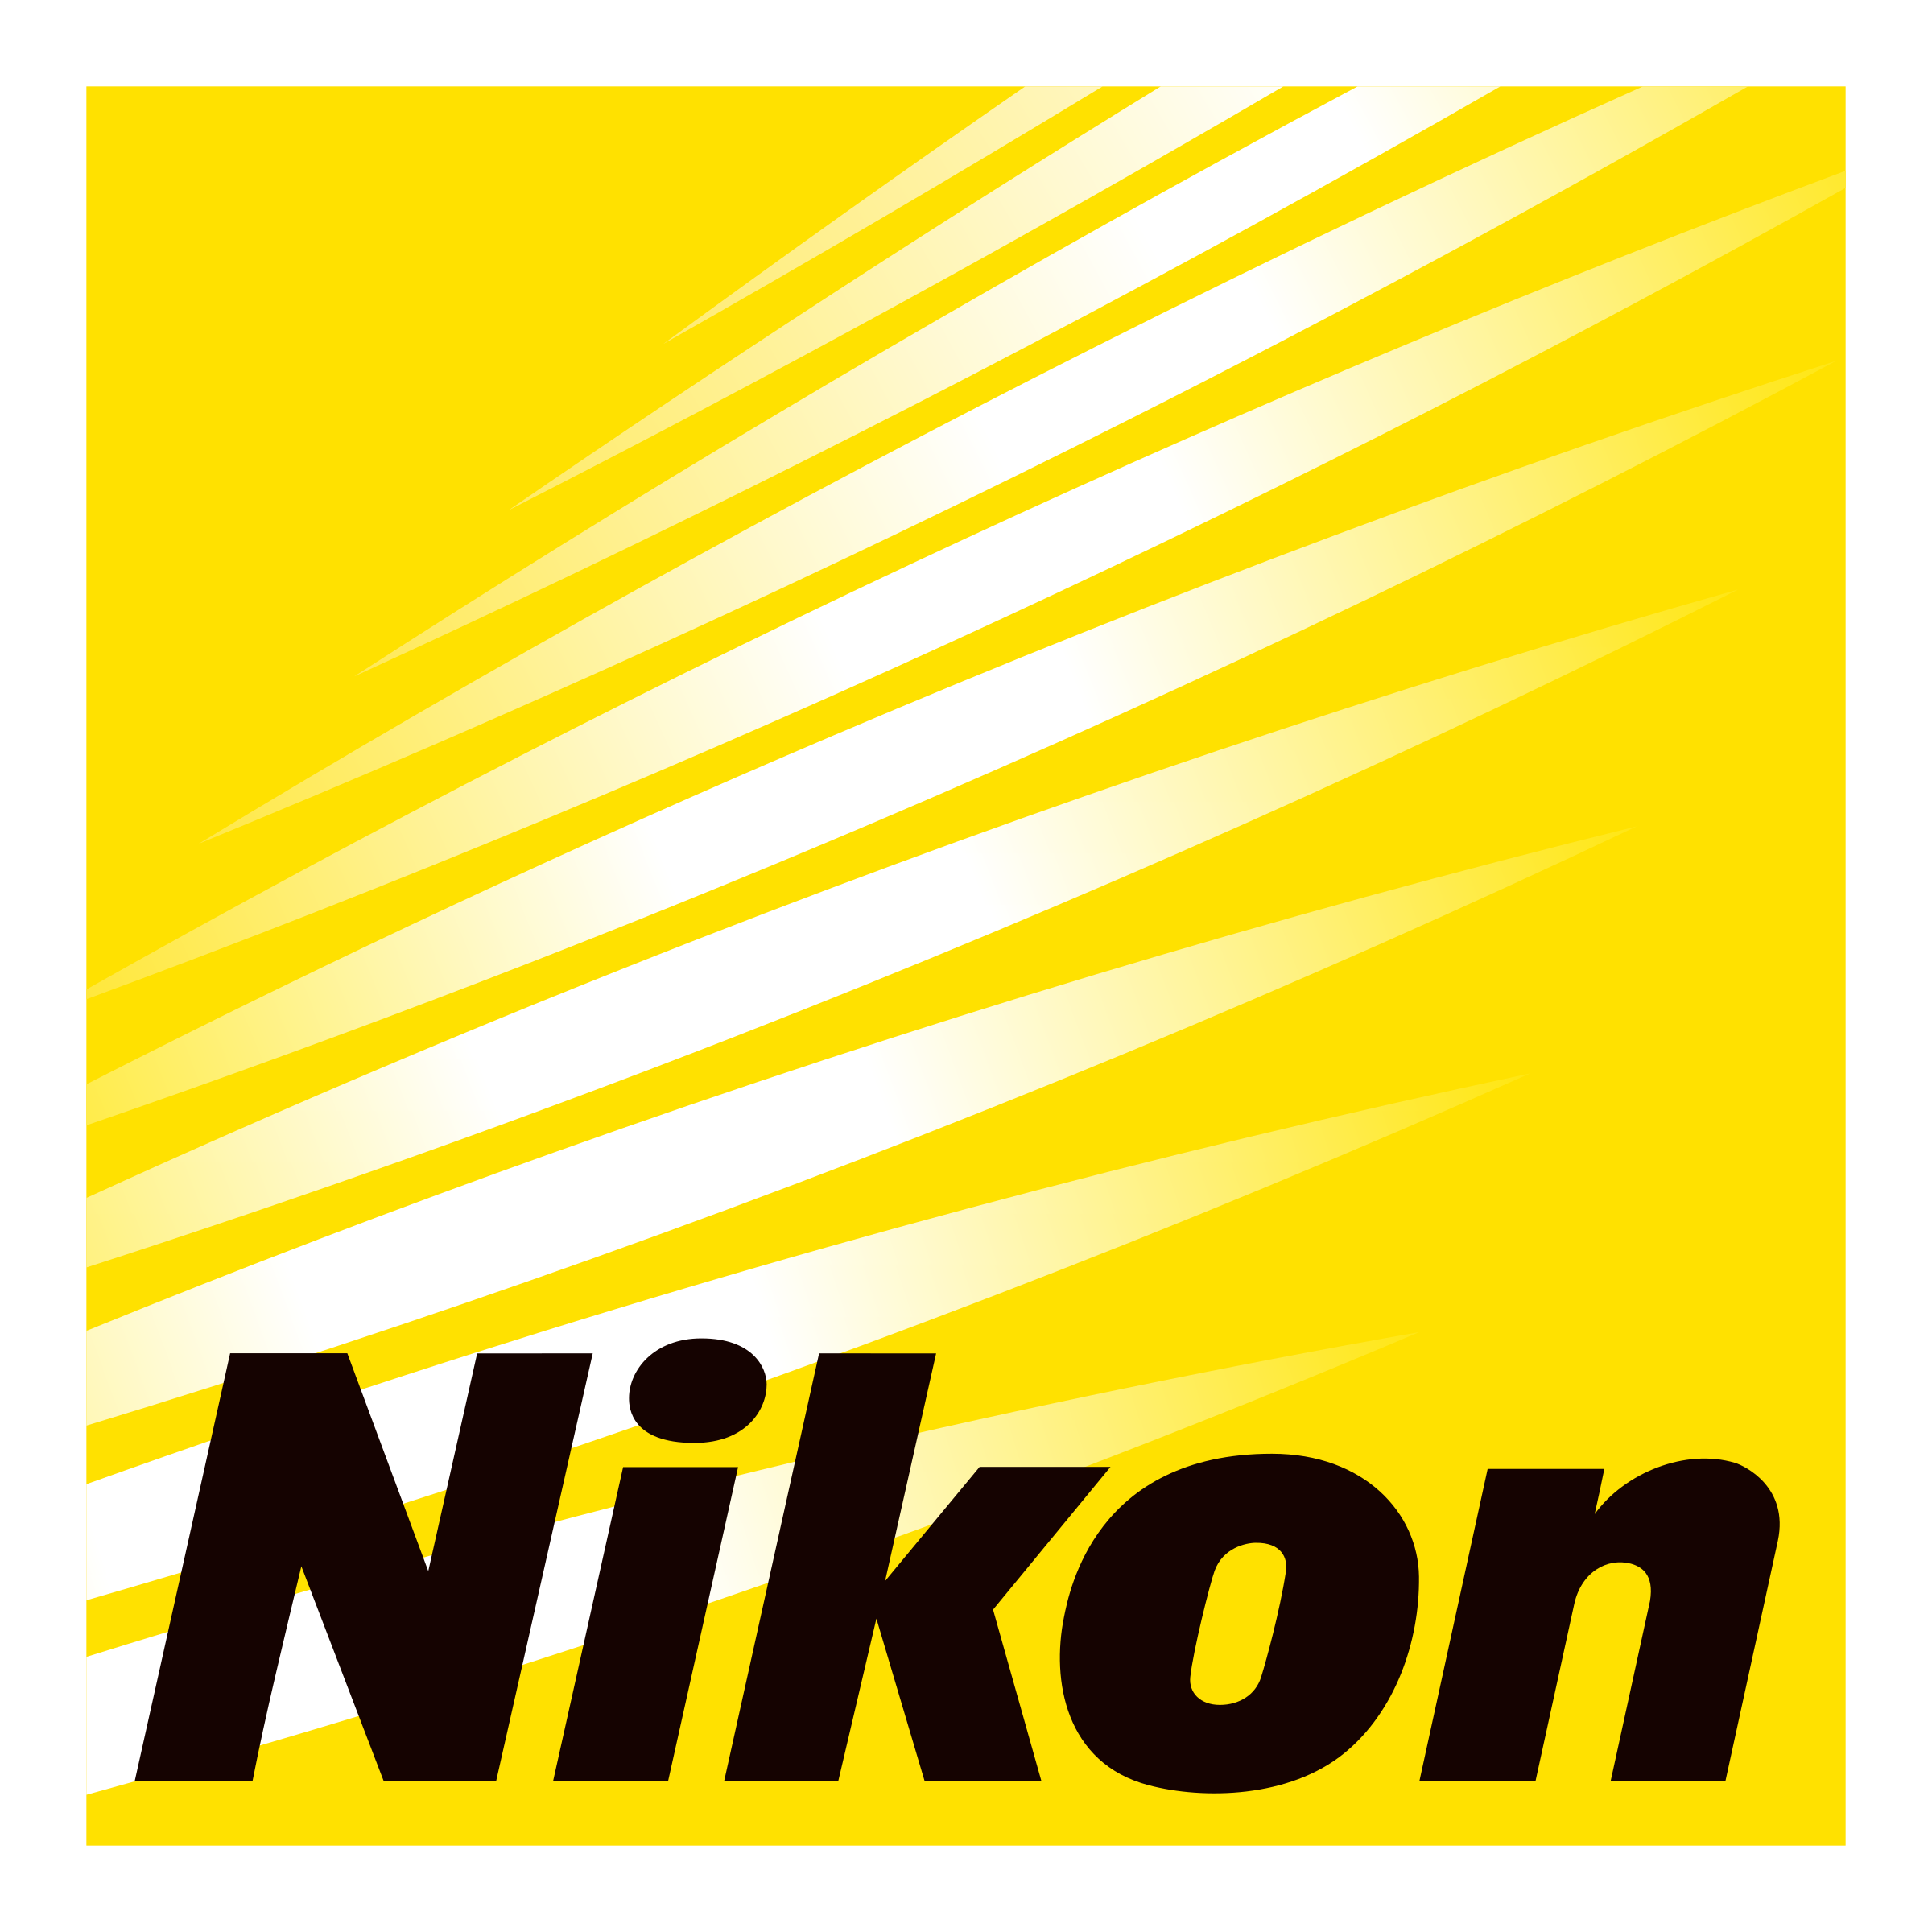 Nikon Logo PNG Transparent & SVG Vector - Freebie Supply